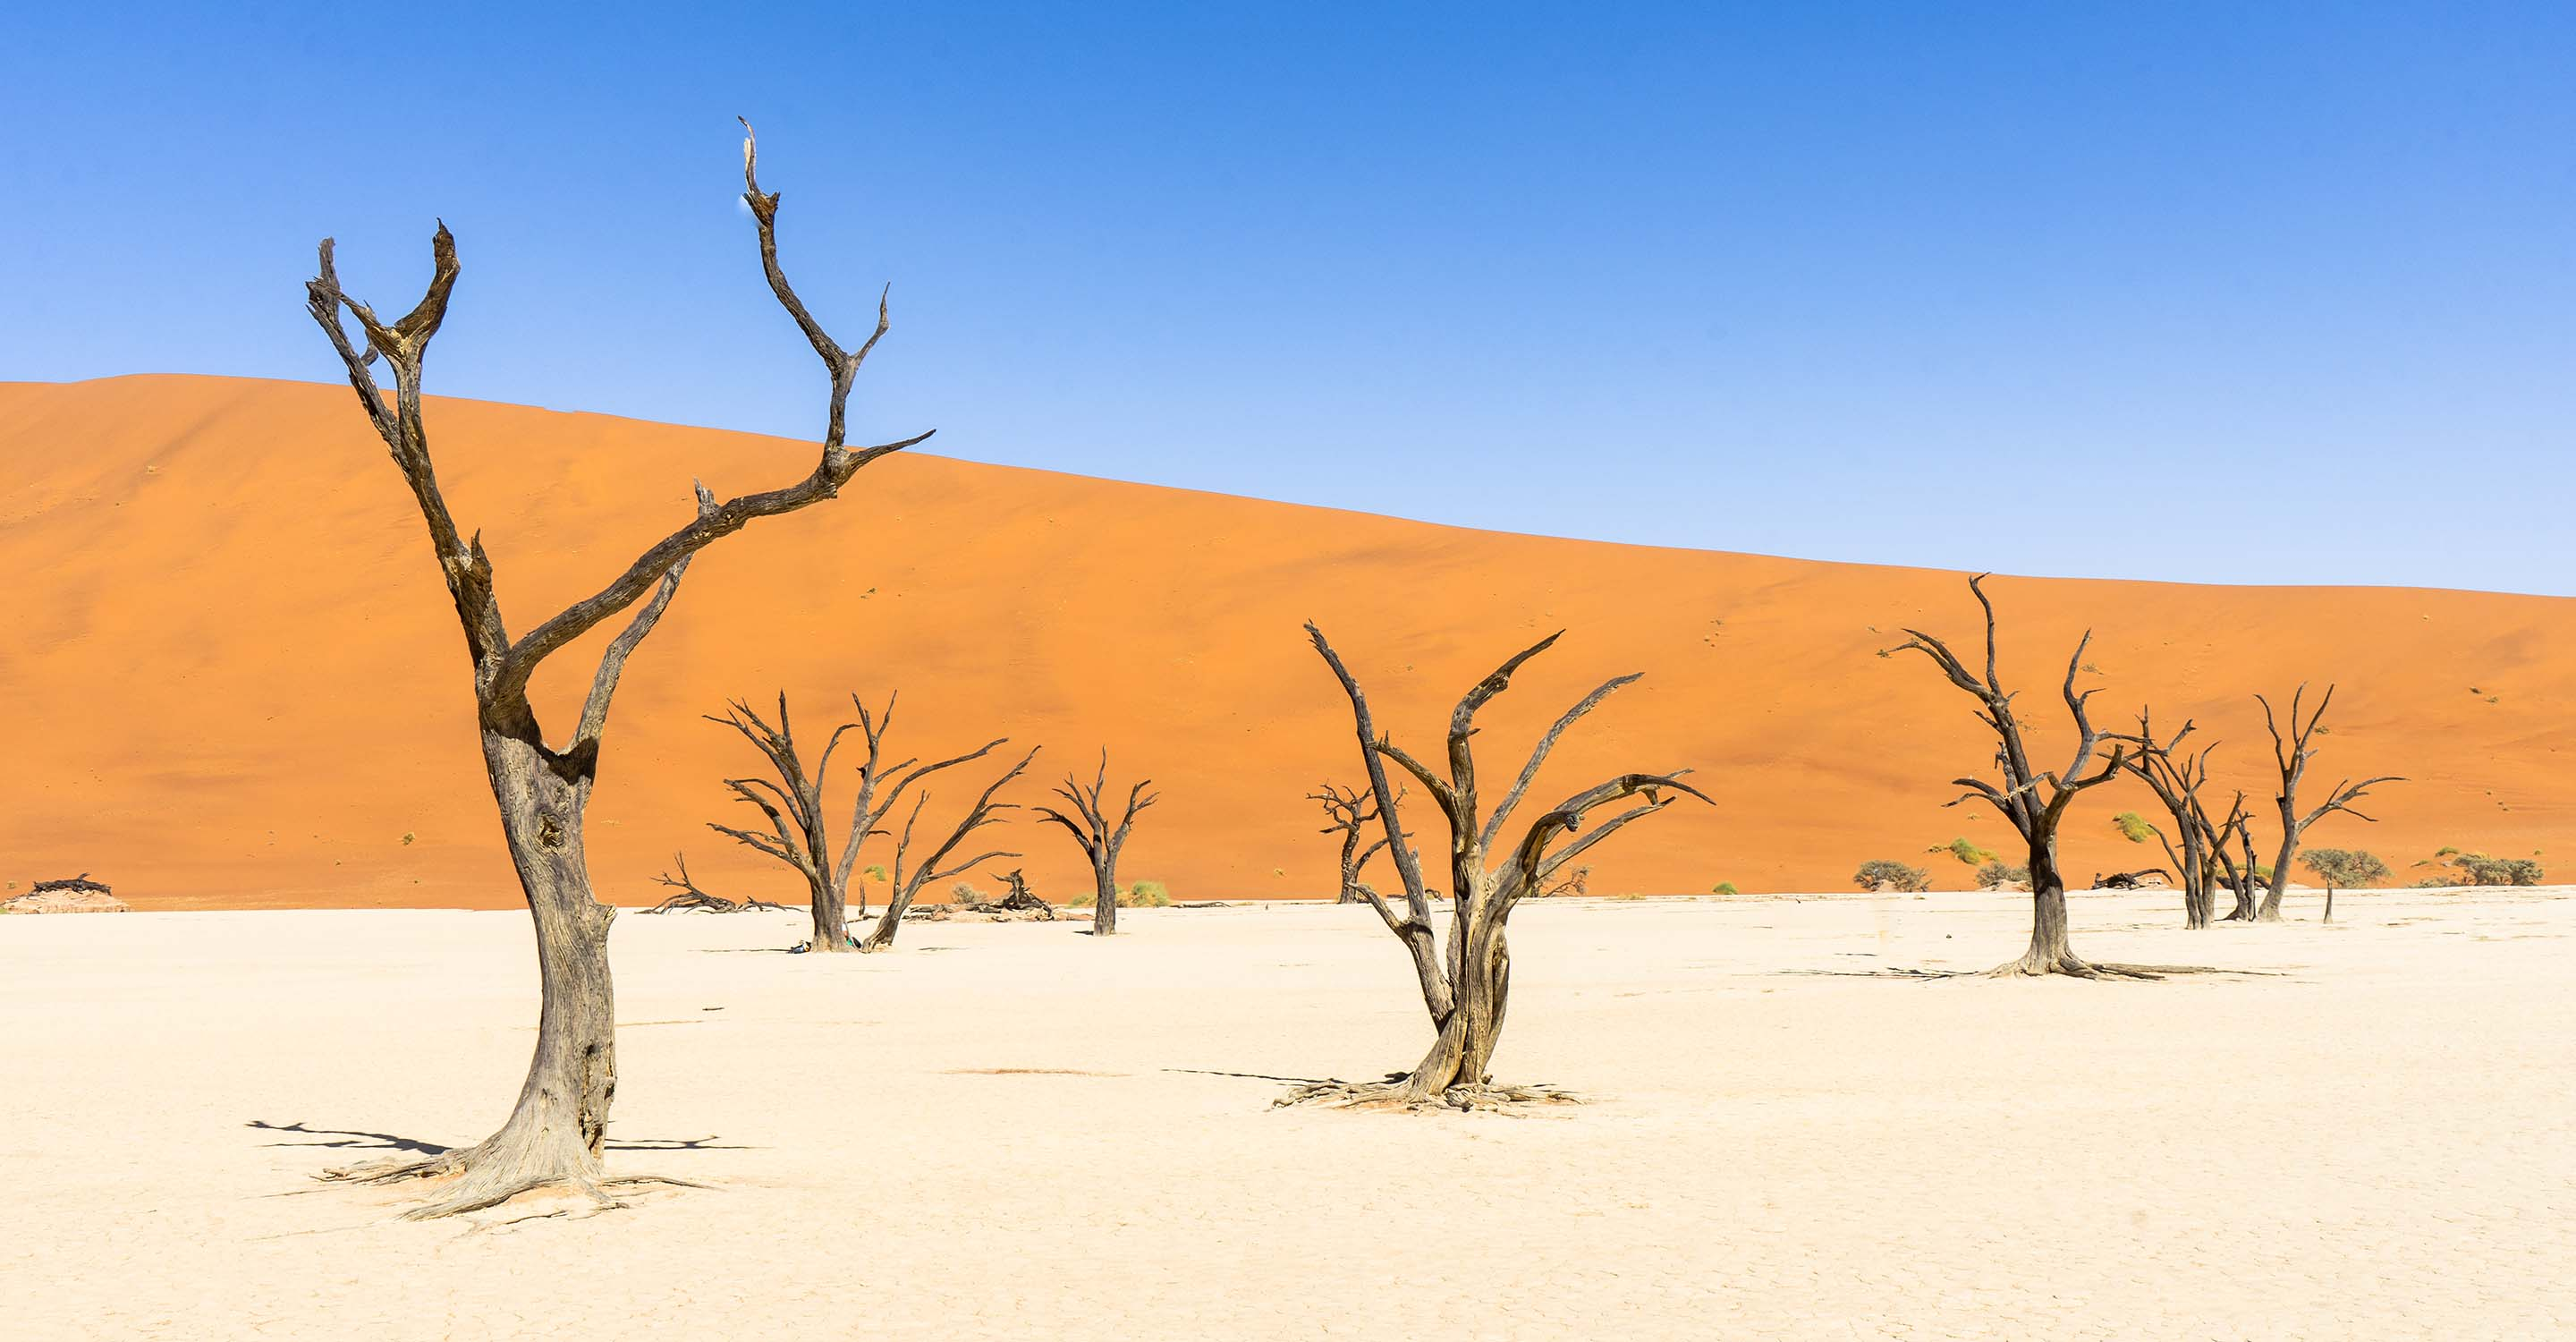 Visiting the stunning Deadvlei at Sossusvlei in Namibia